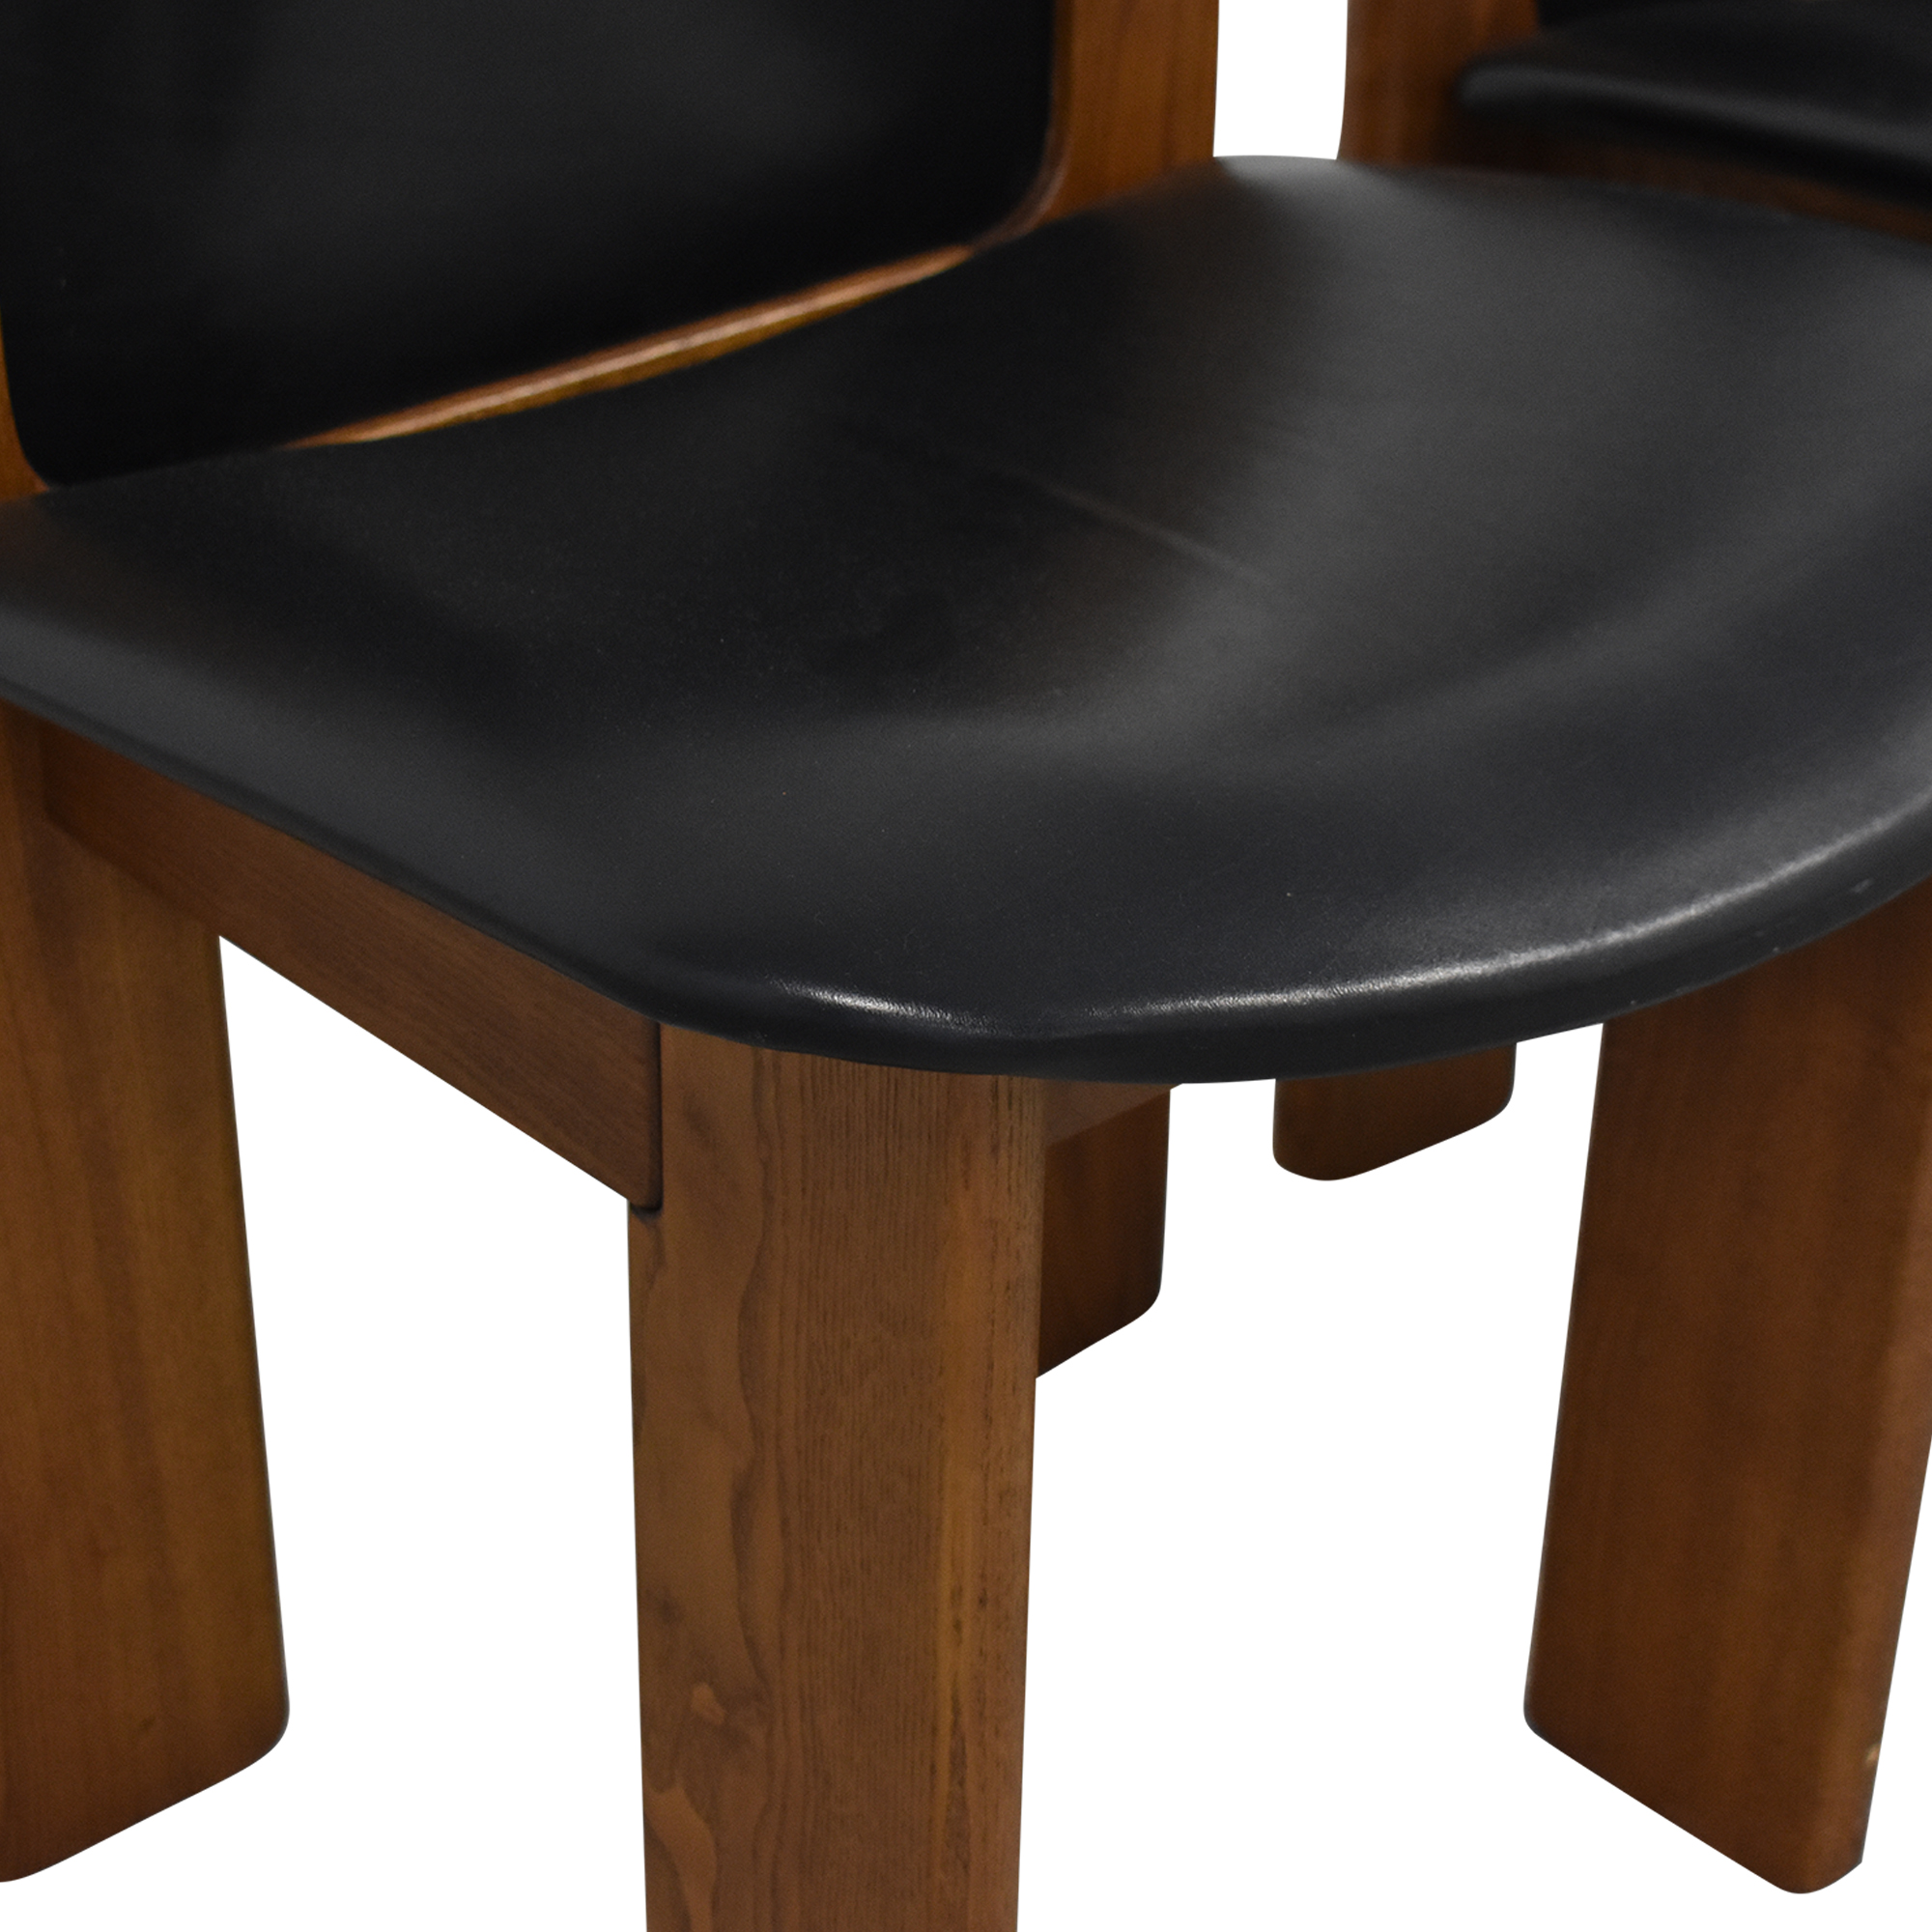 Fratelli Montina Fratelli Montina Italian Dining Chairs for sale